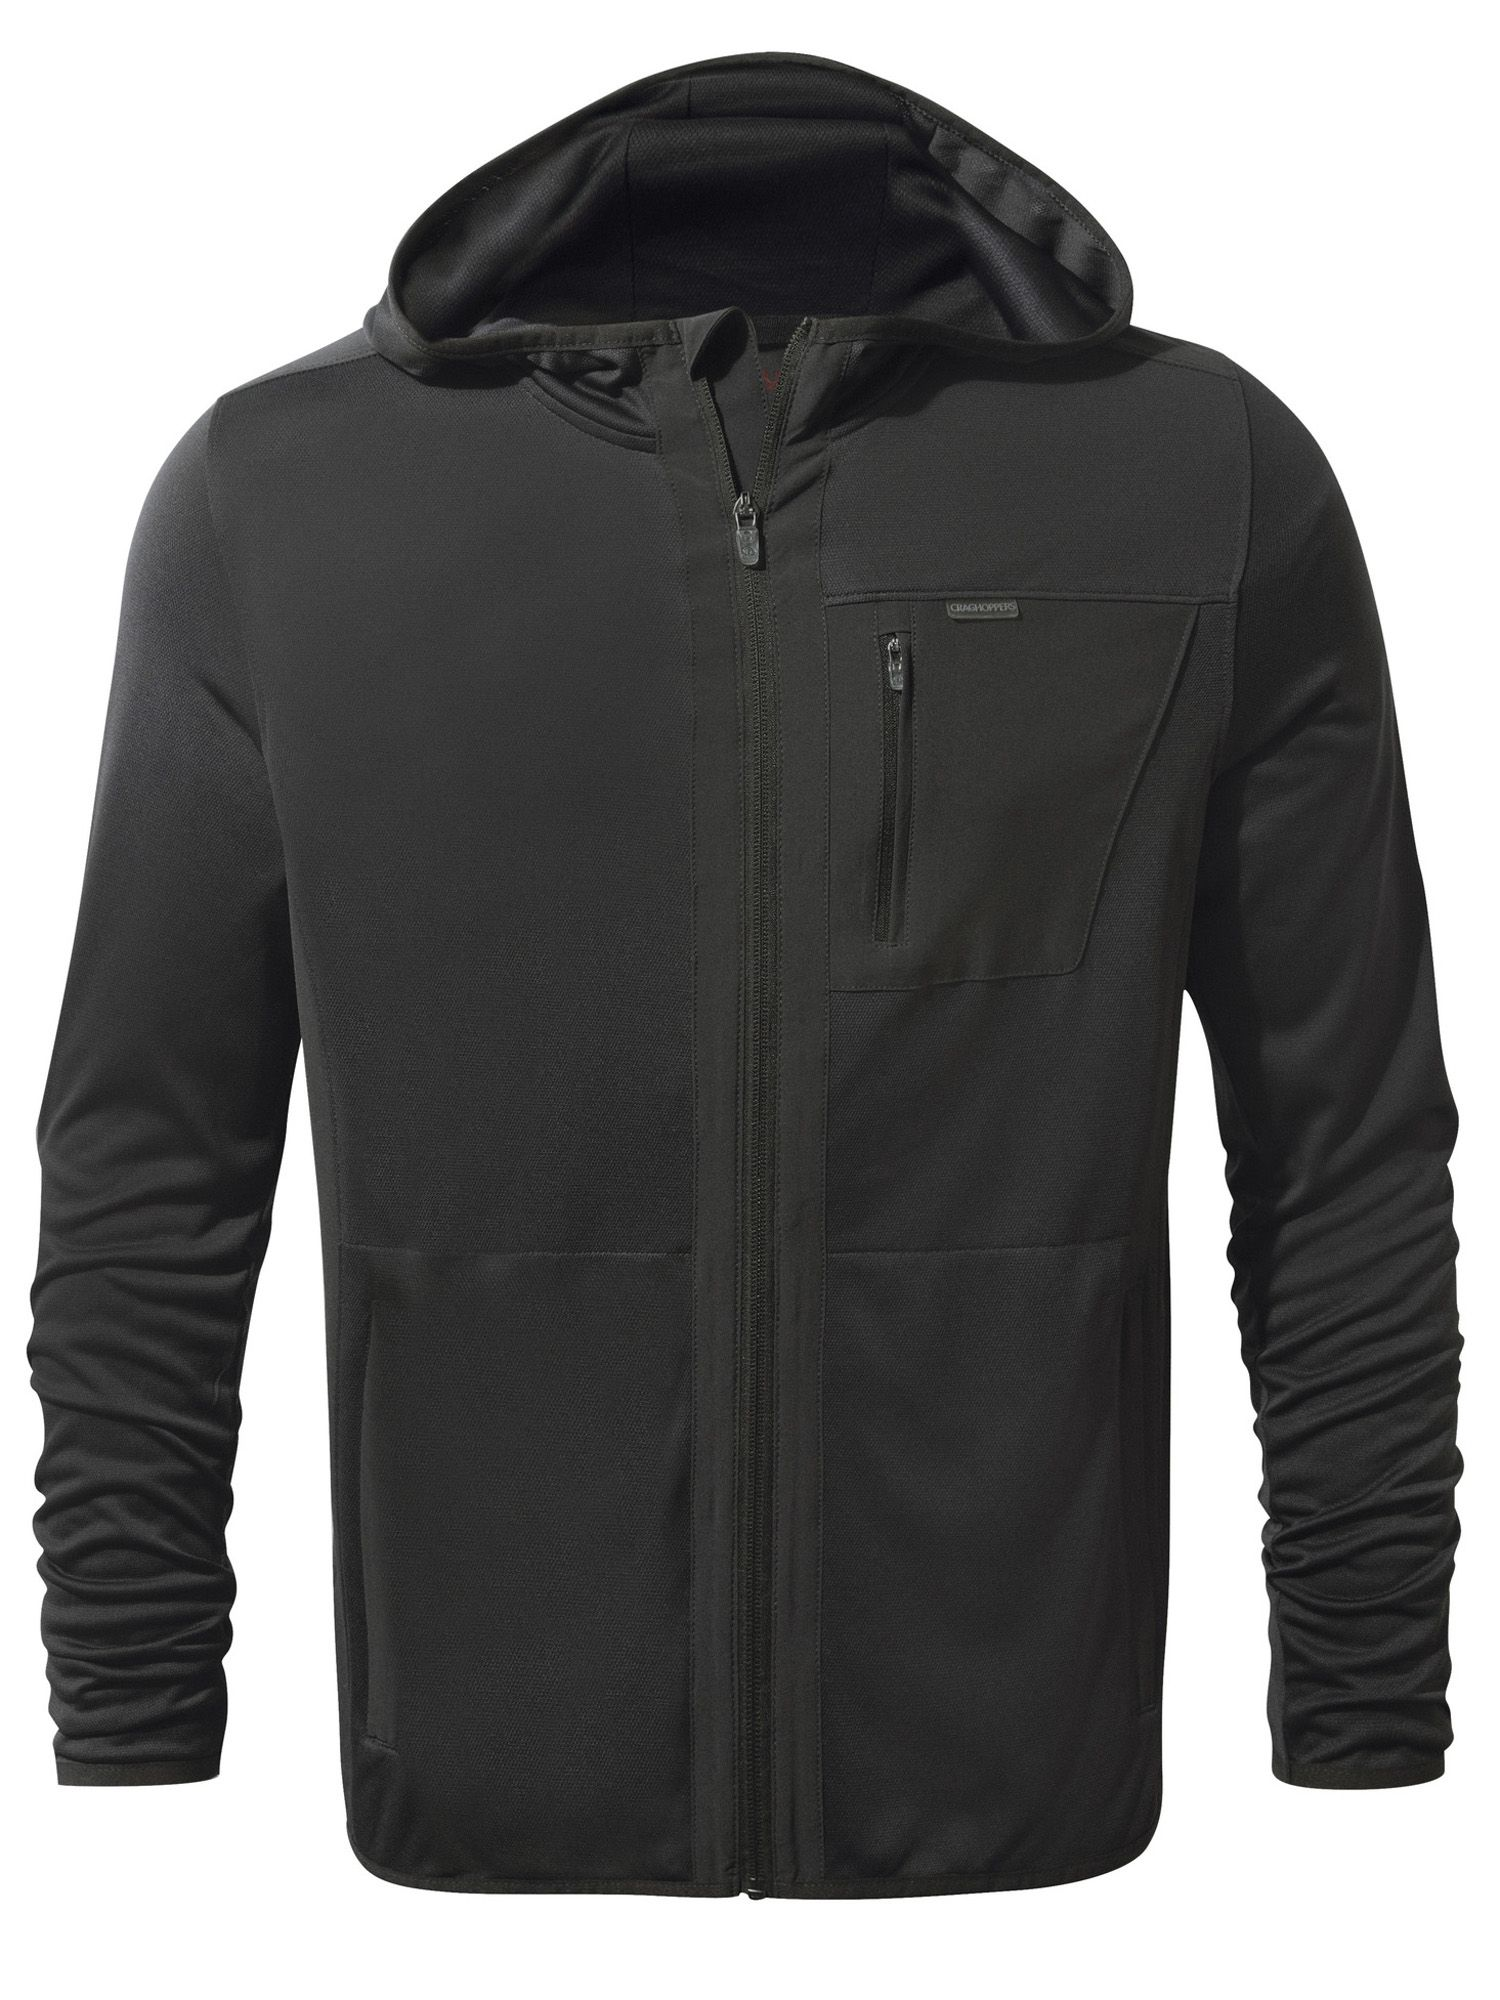 Men's Craghoppers Nosilife Elgin Hooded Jacket, Black